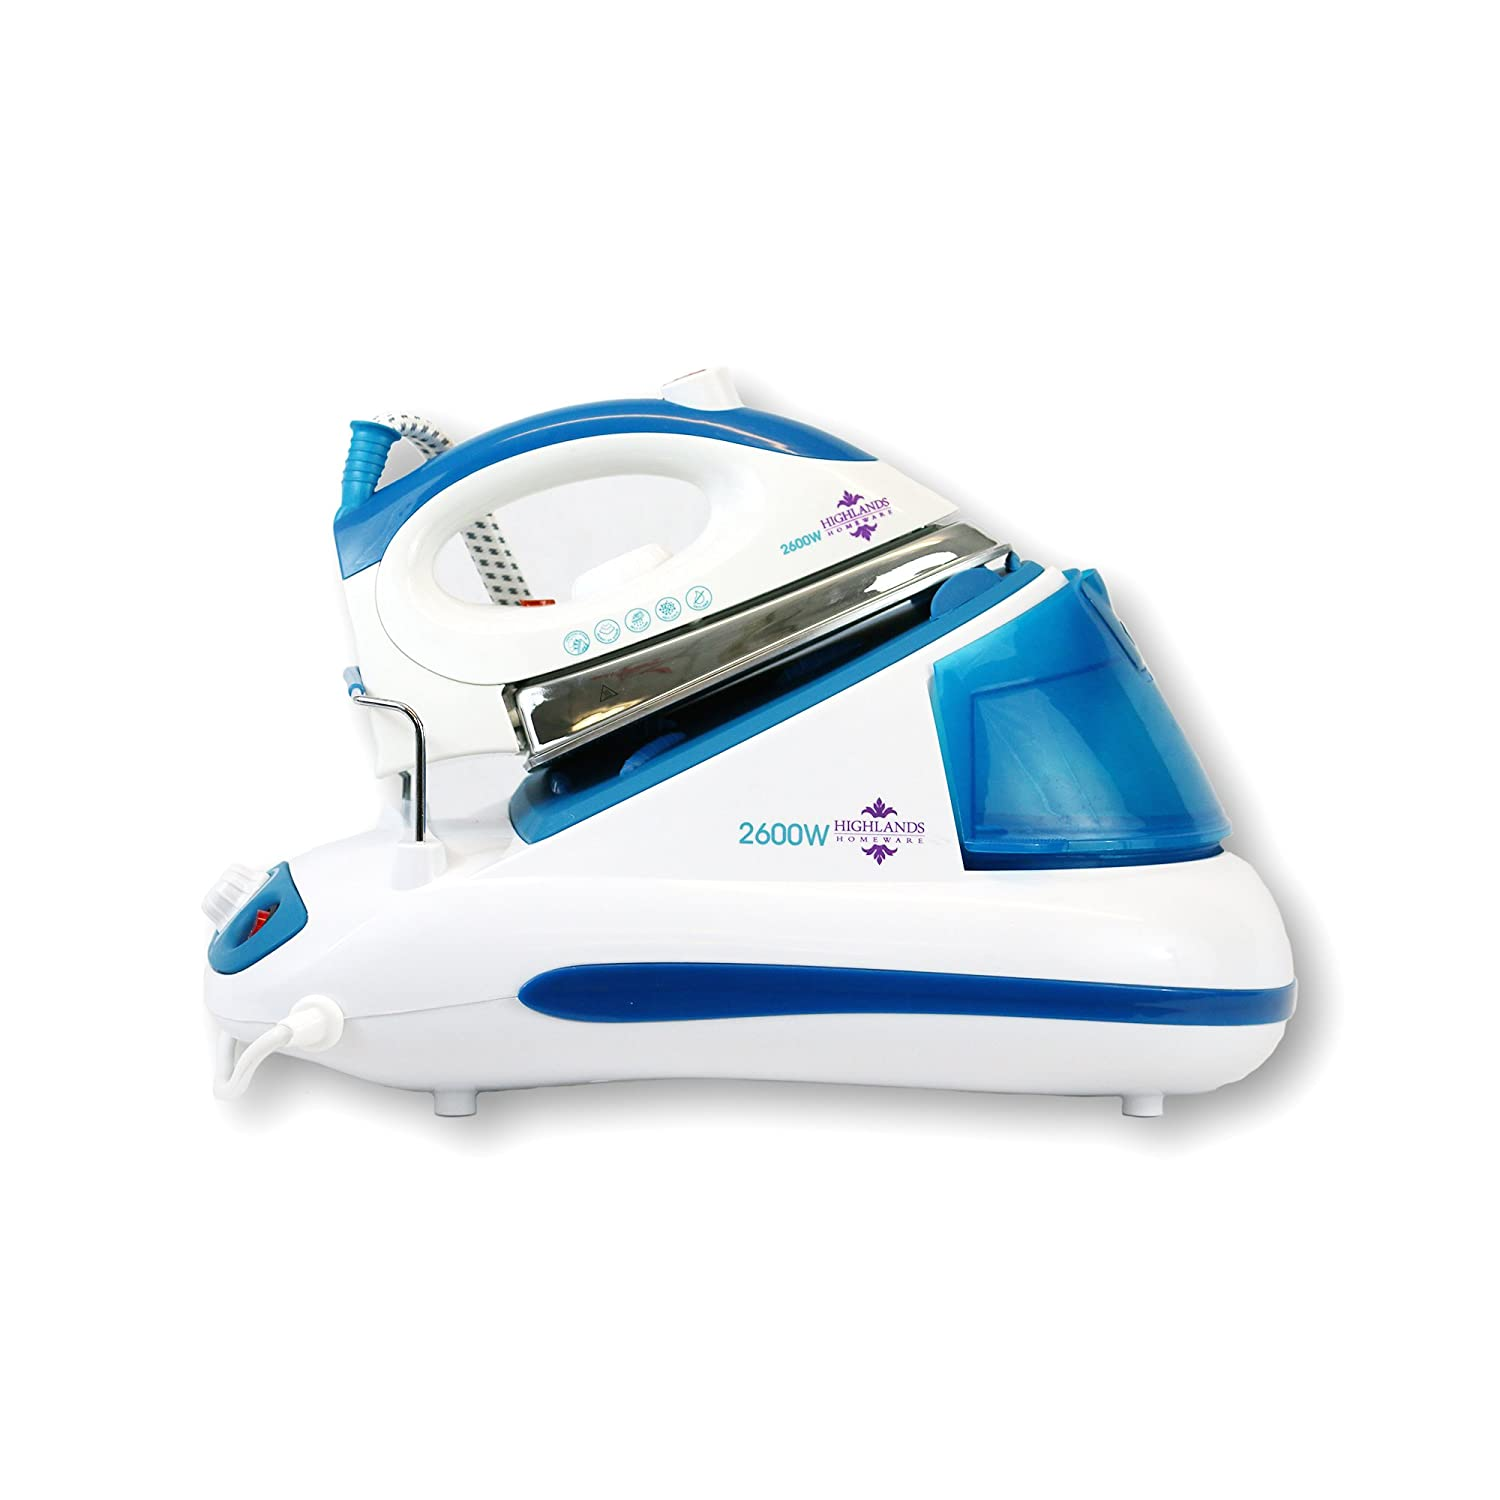 HIGHLANDS IRON20 2600W POWER STEAM GENERATOR IRON STAINLESS STEEL